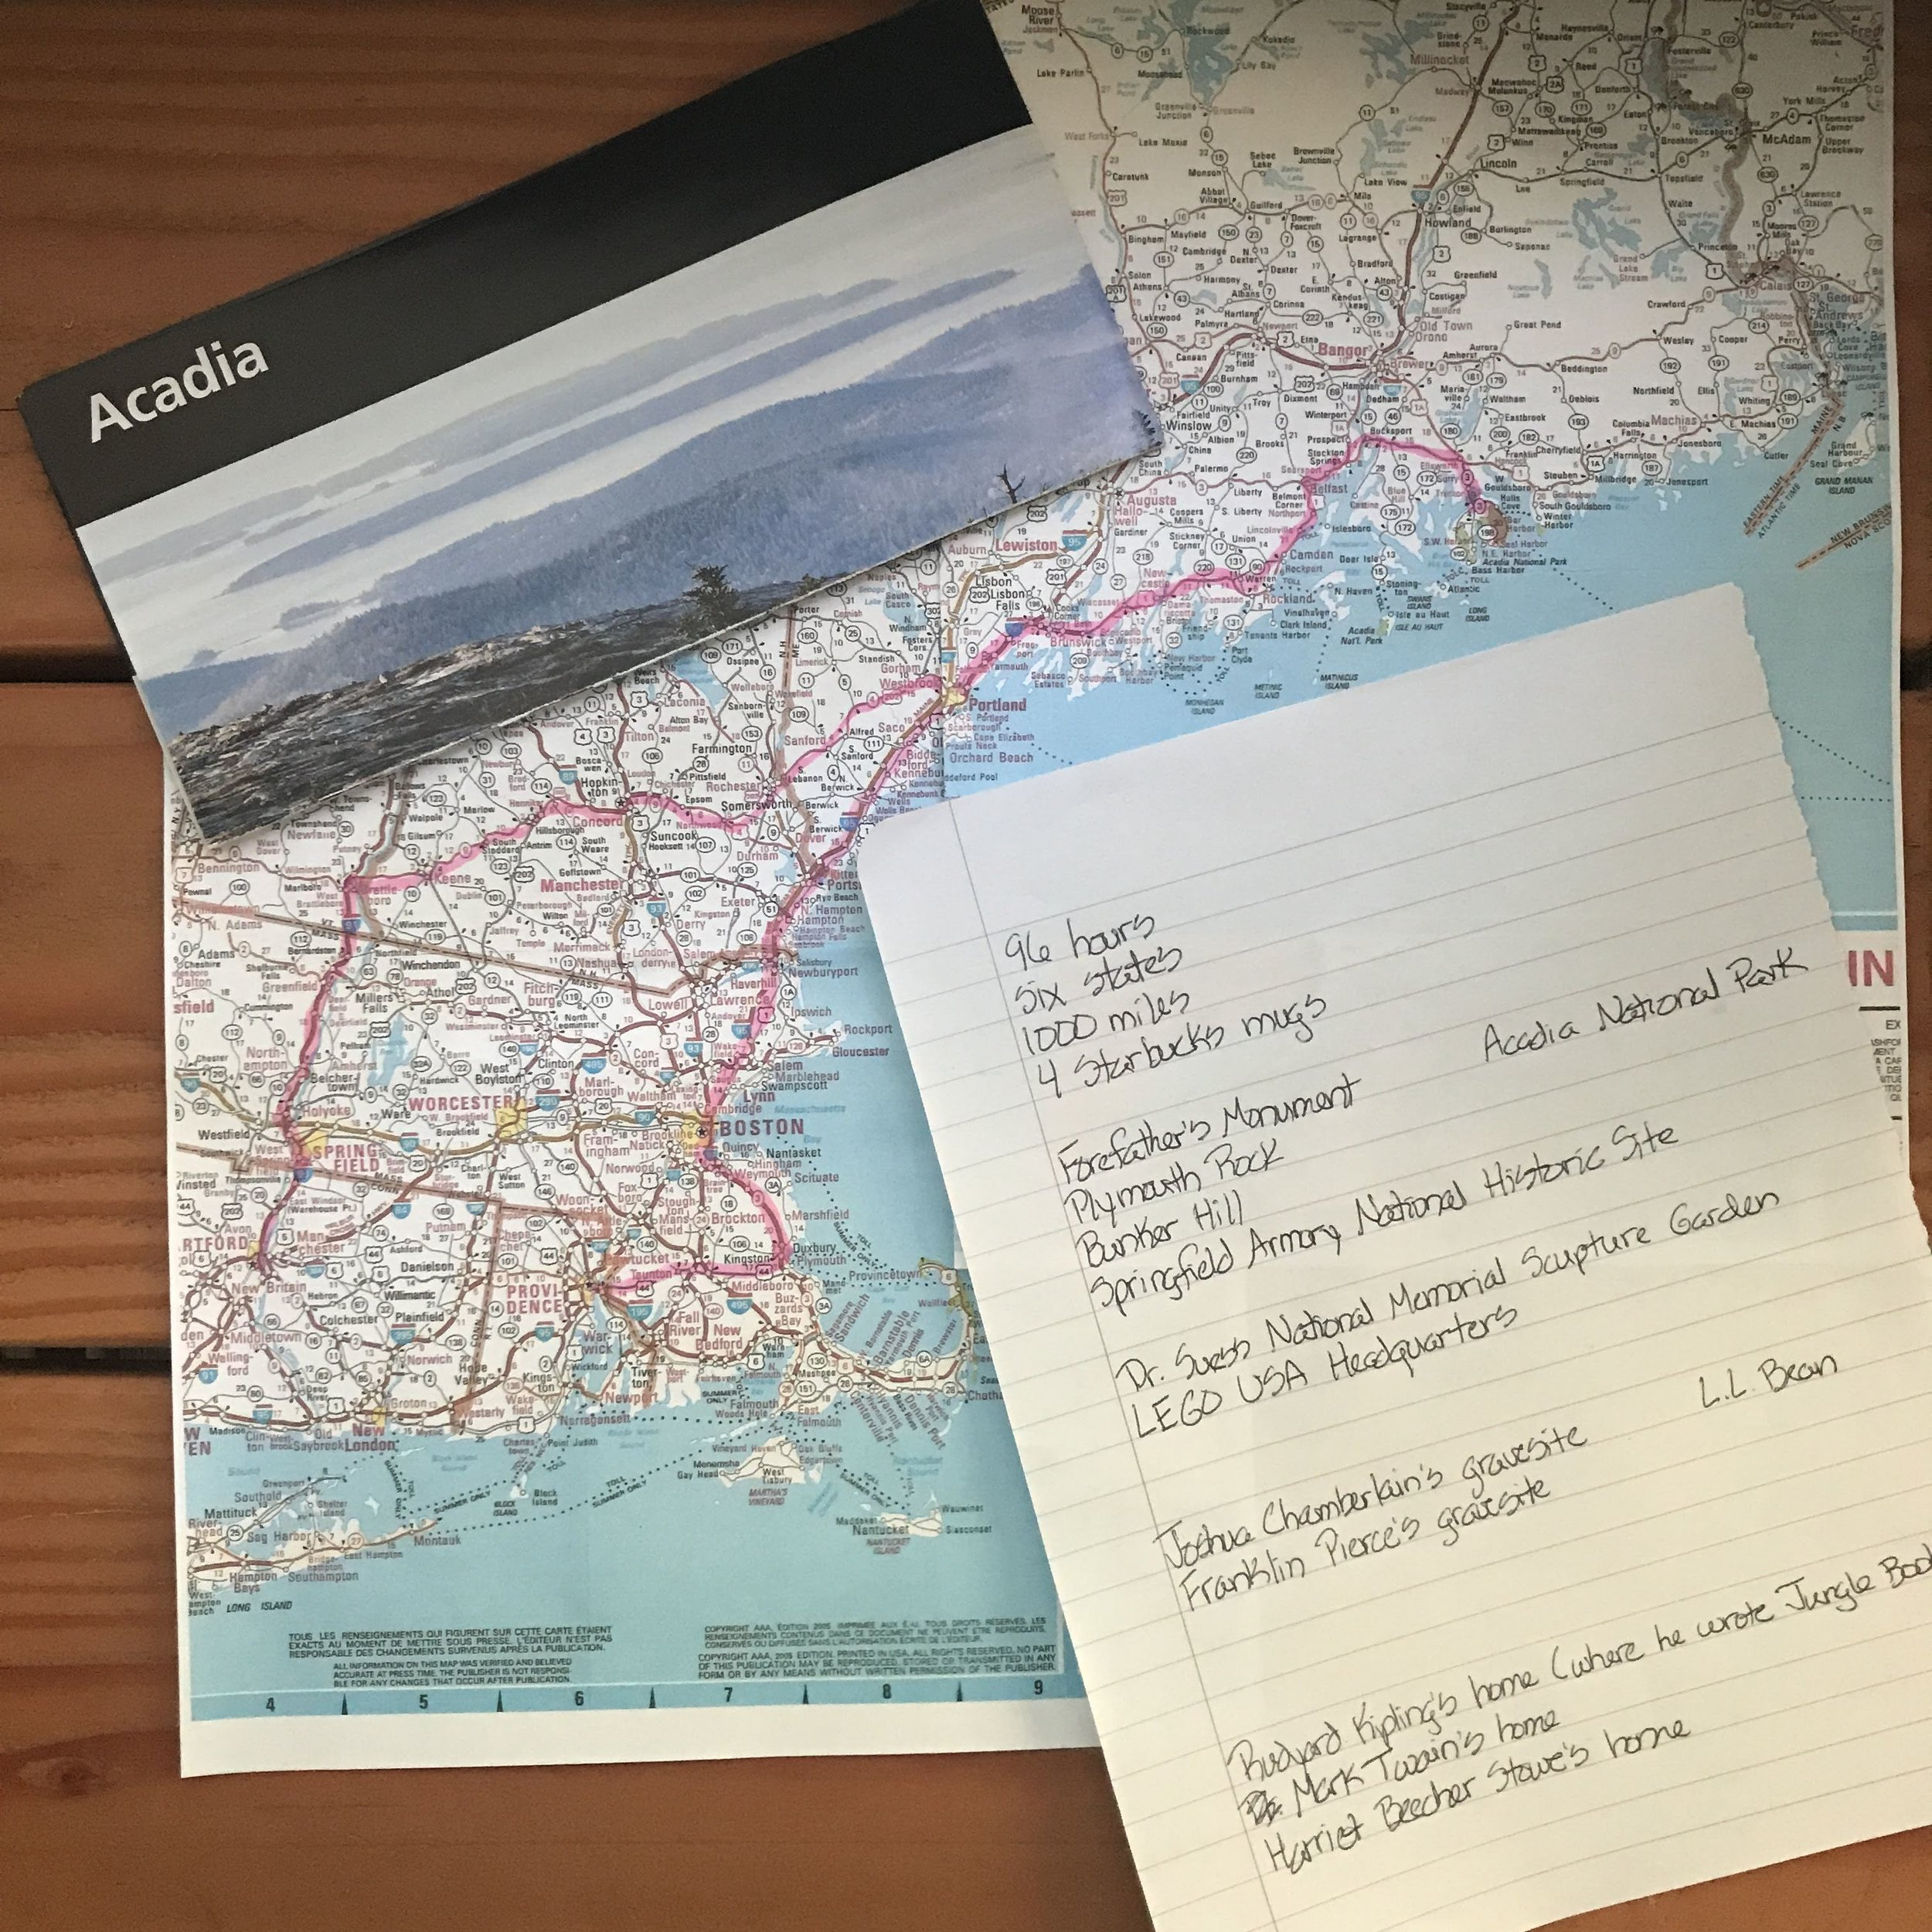 All of the stops on our Northeast trip